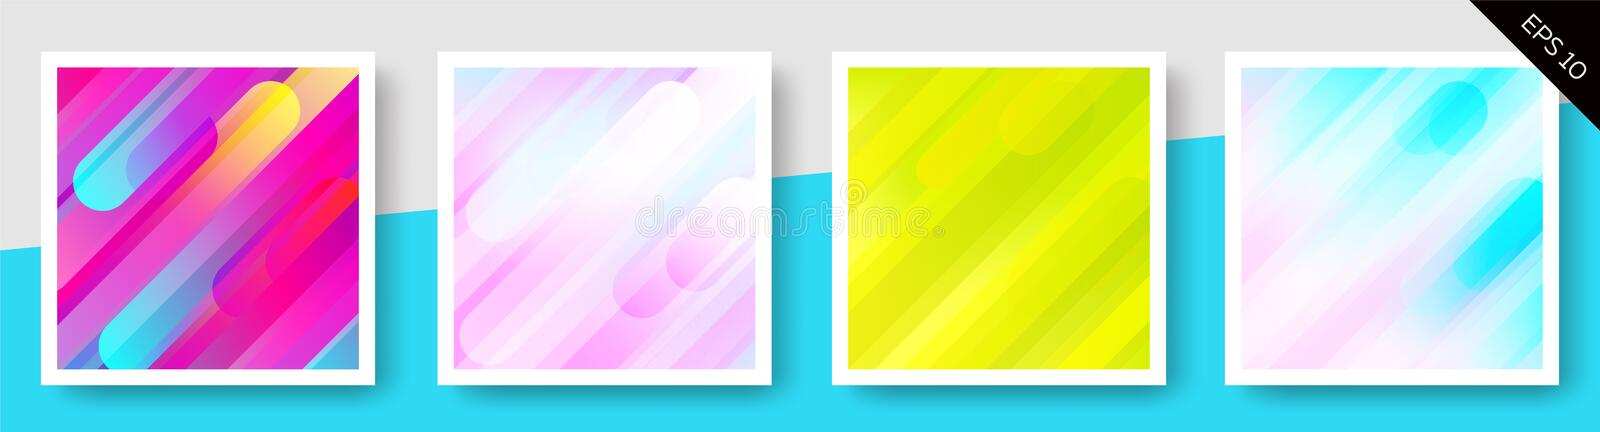 Set of abstract backgrounds stock illustration